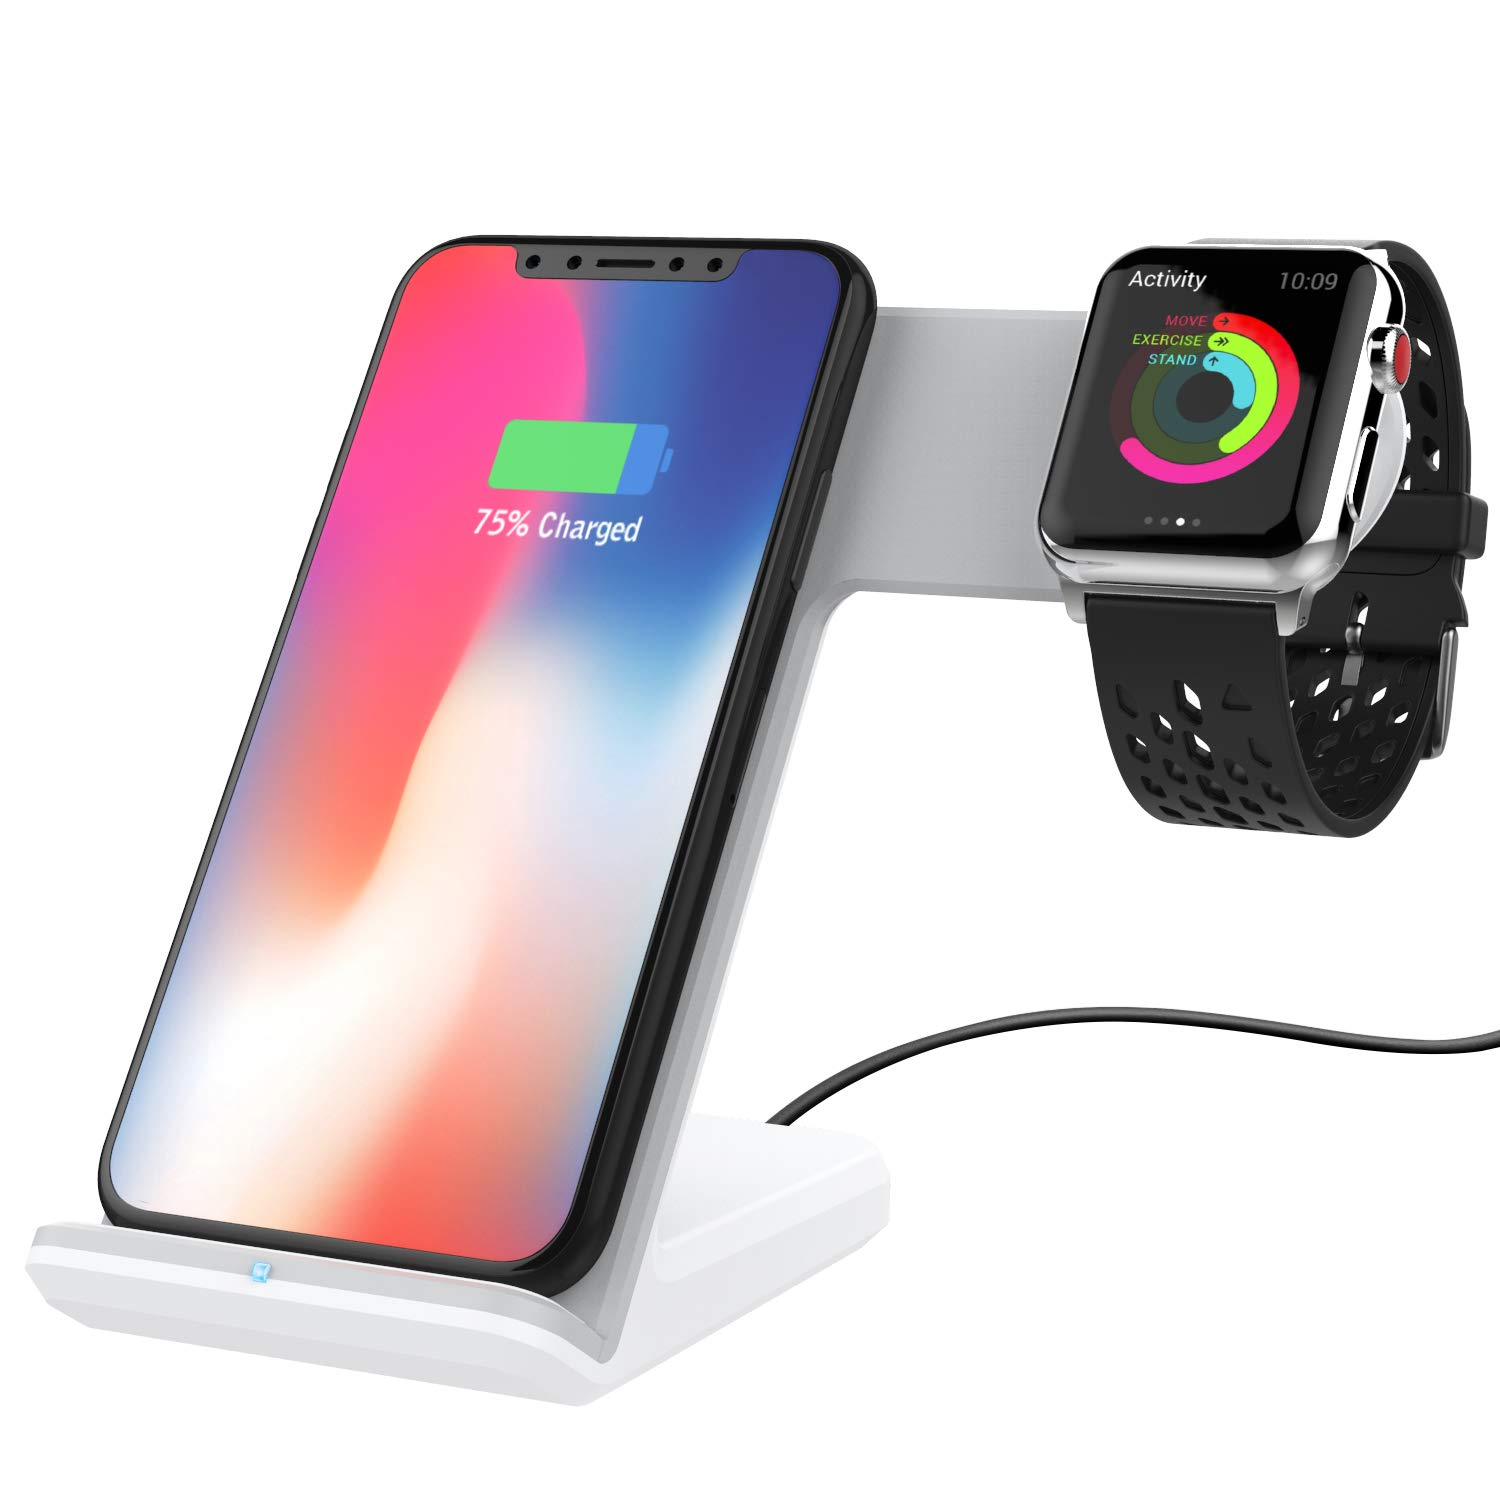 MoKo 2 in 1 Wireless Charger Stand, Dual Qi Fast Charging Dock 2W for Apple Watch Series 2/3, 7.5W for iPhone X/8/8 Plus, 10W for Samsung Galaxy S9/S9+/Note 8, 5W for Qi-Enabled Devices - White